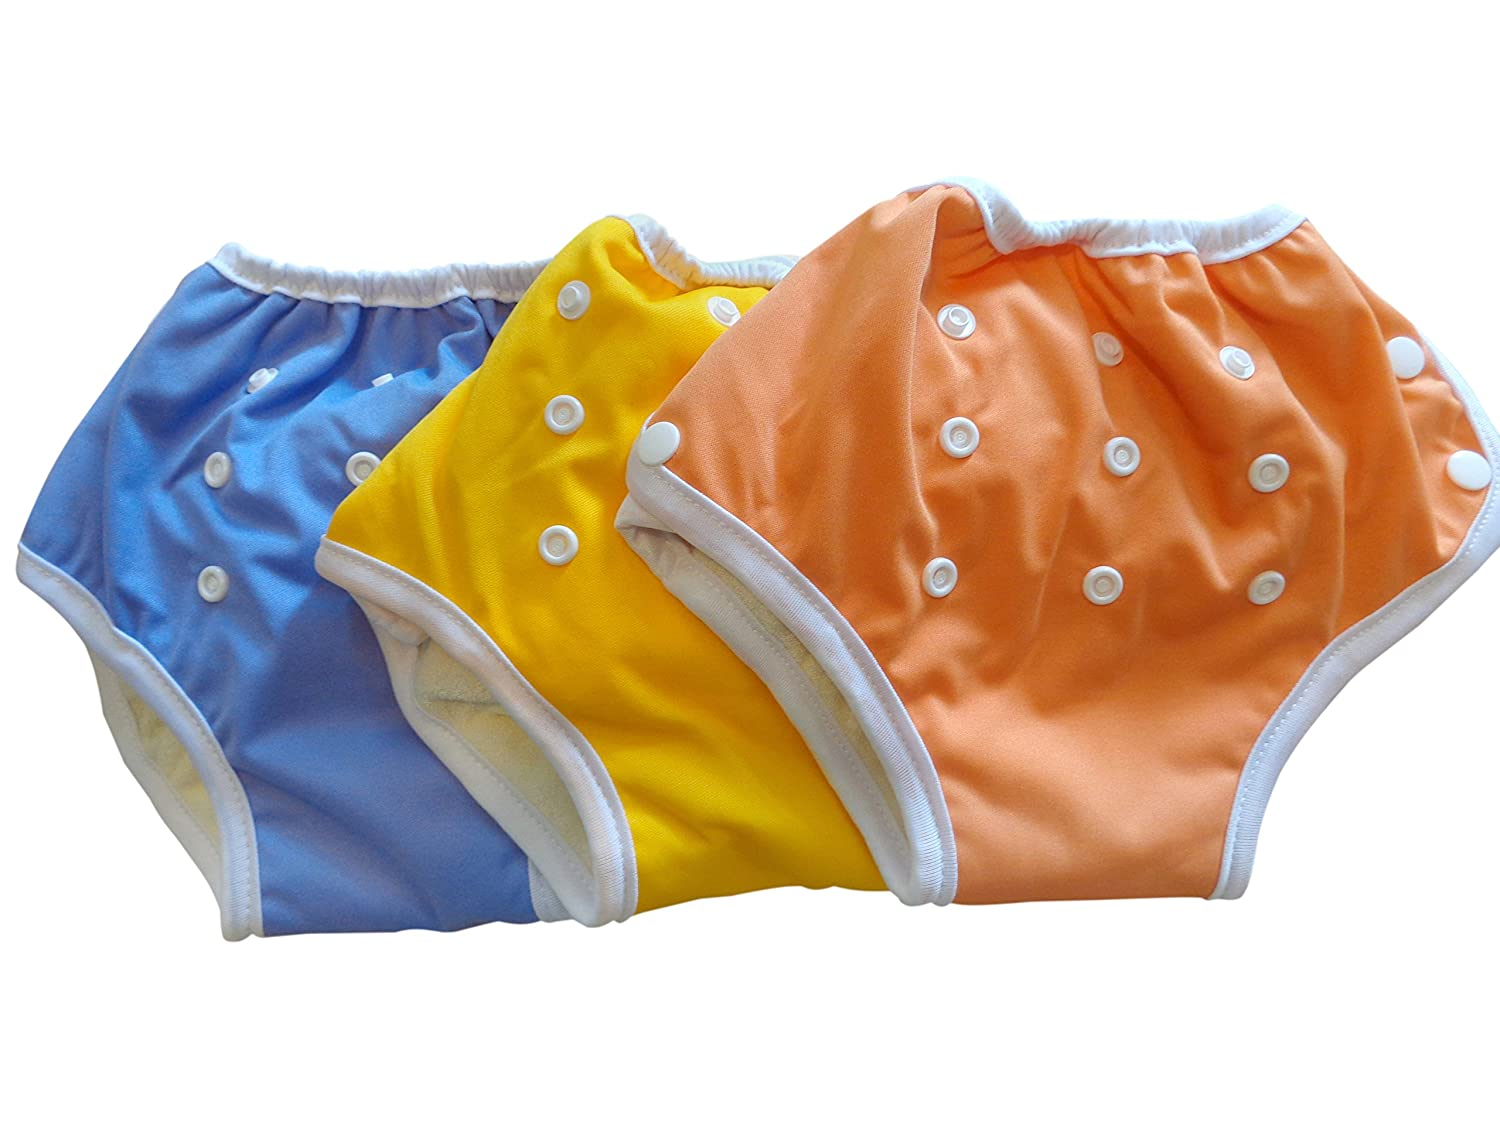 Three Little Imps Culottes d'apprentissage à fermeture 8-35+ livres jaune / violet / orange - Set de 3